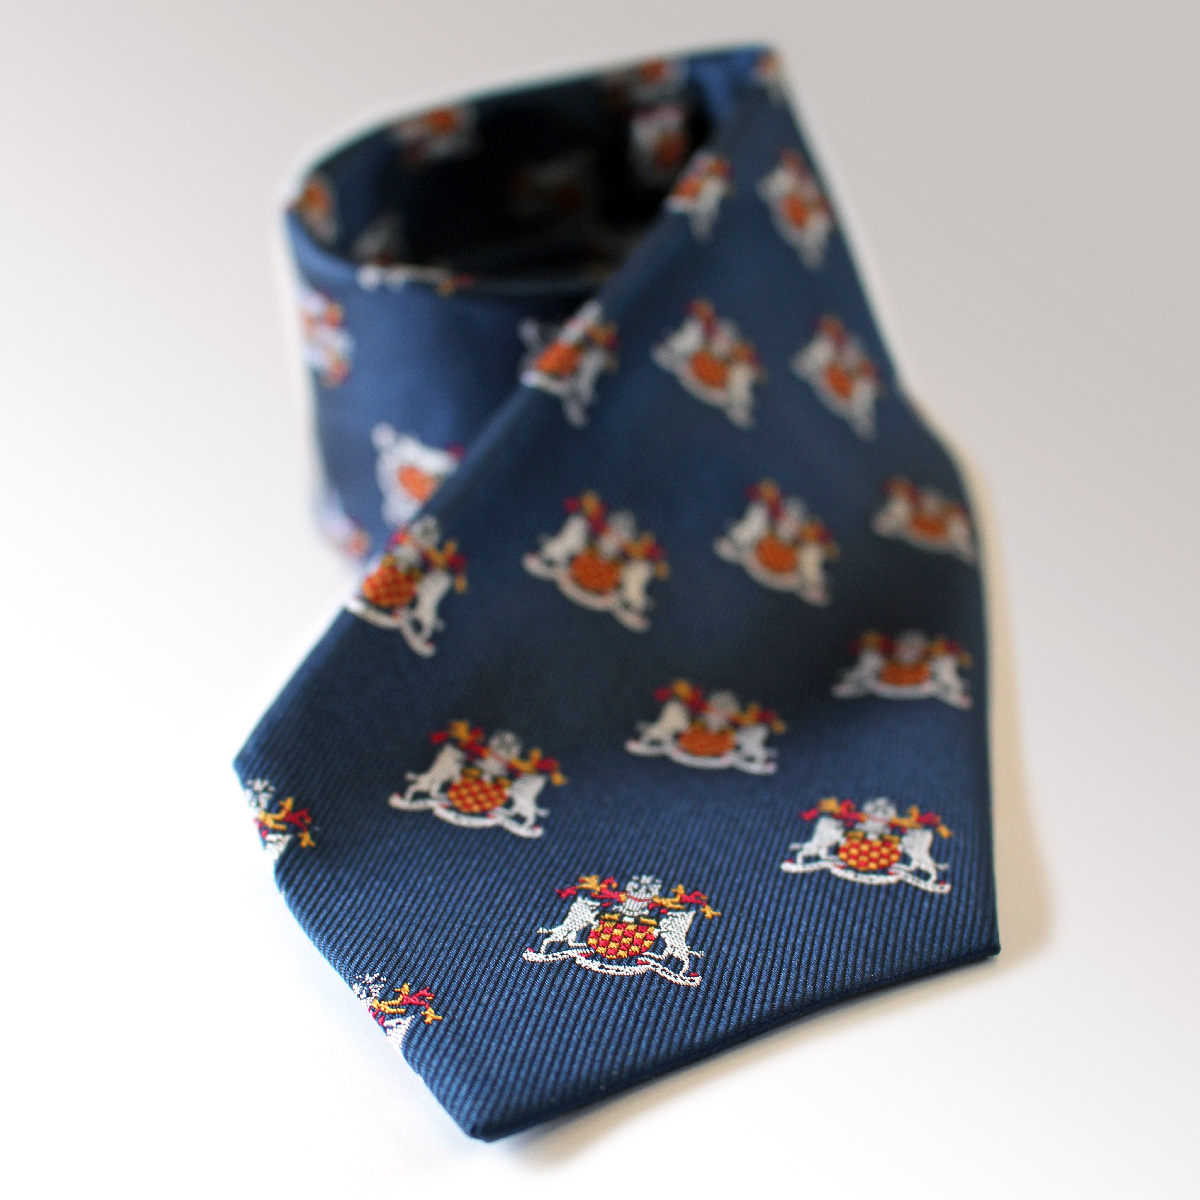 Tie with coat of arms on it